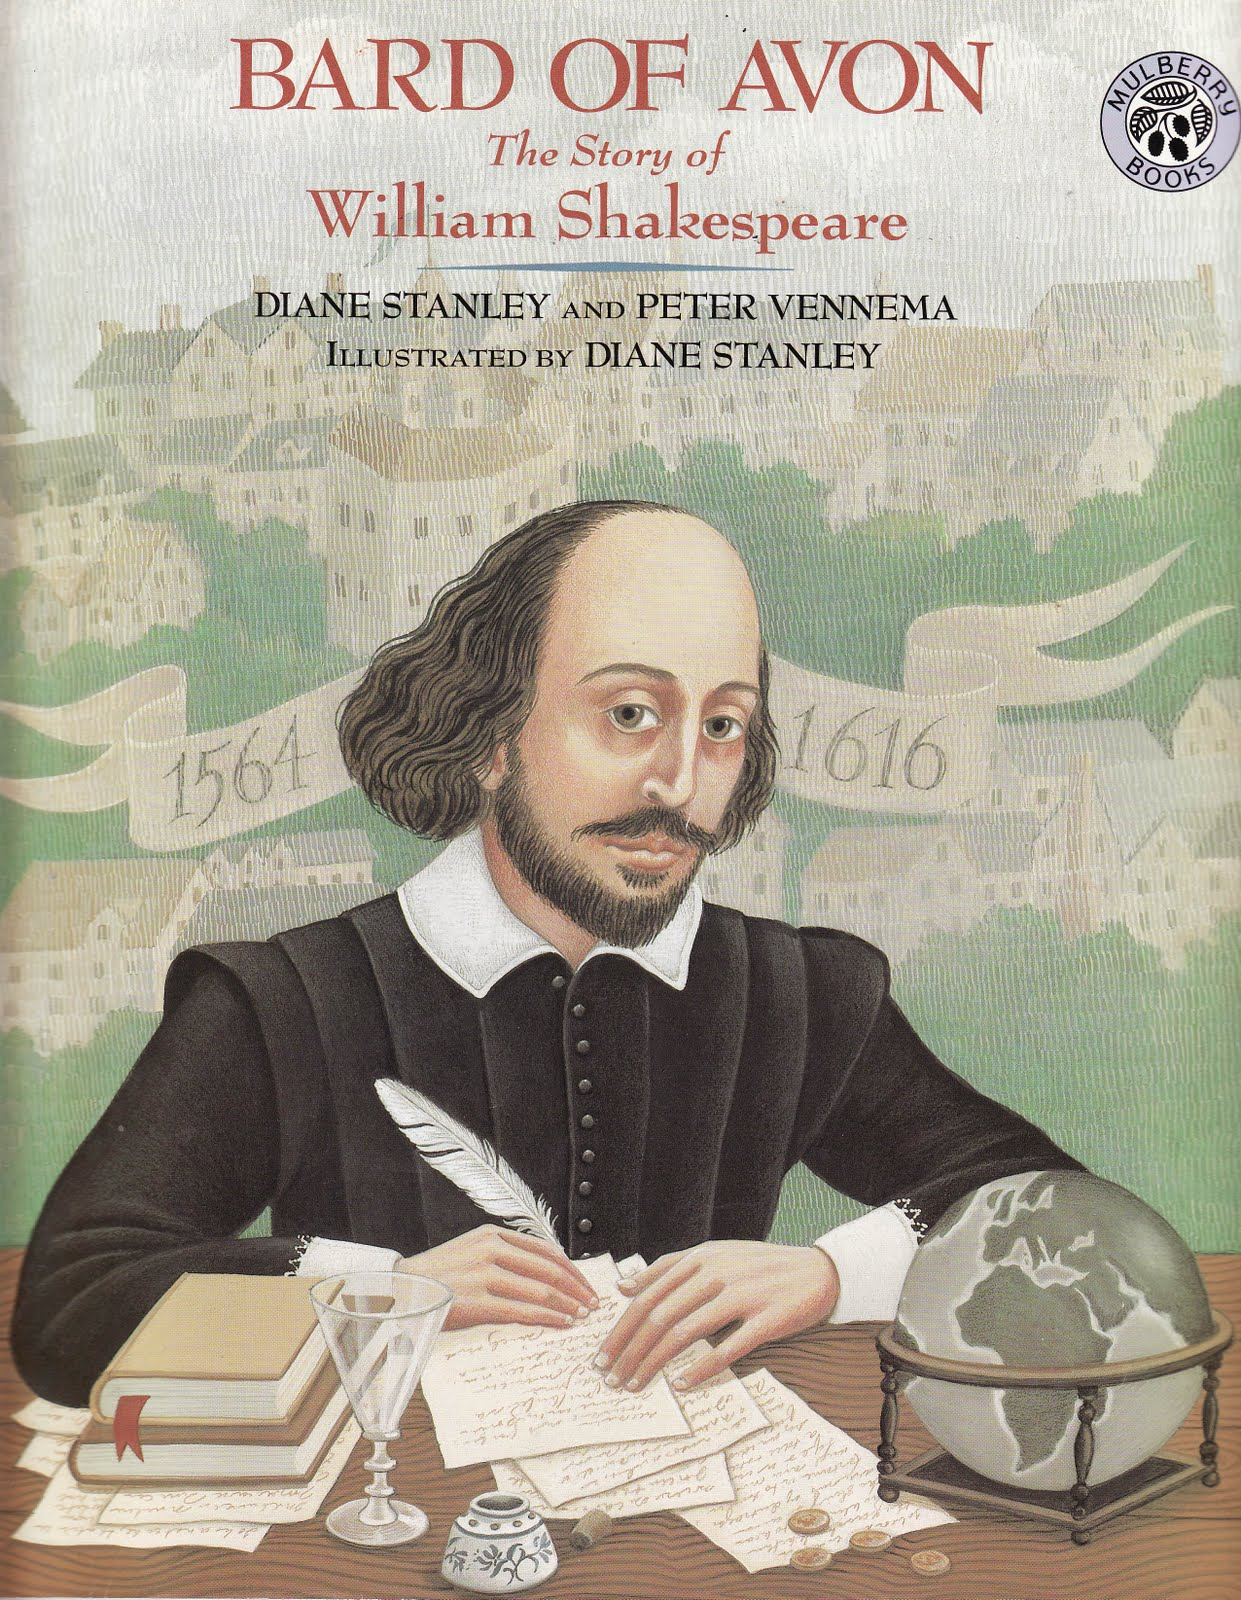 a biography of william shakespeare the bard of avon William shakespeare - english poet, playwright, and actor name: william  shakespeare date of birth: 26 april 1564 place of birth: stratford-upon-avon,   william shakespeare, shakespeare also spelled shakspere, byname bard of  avon or.